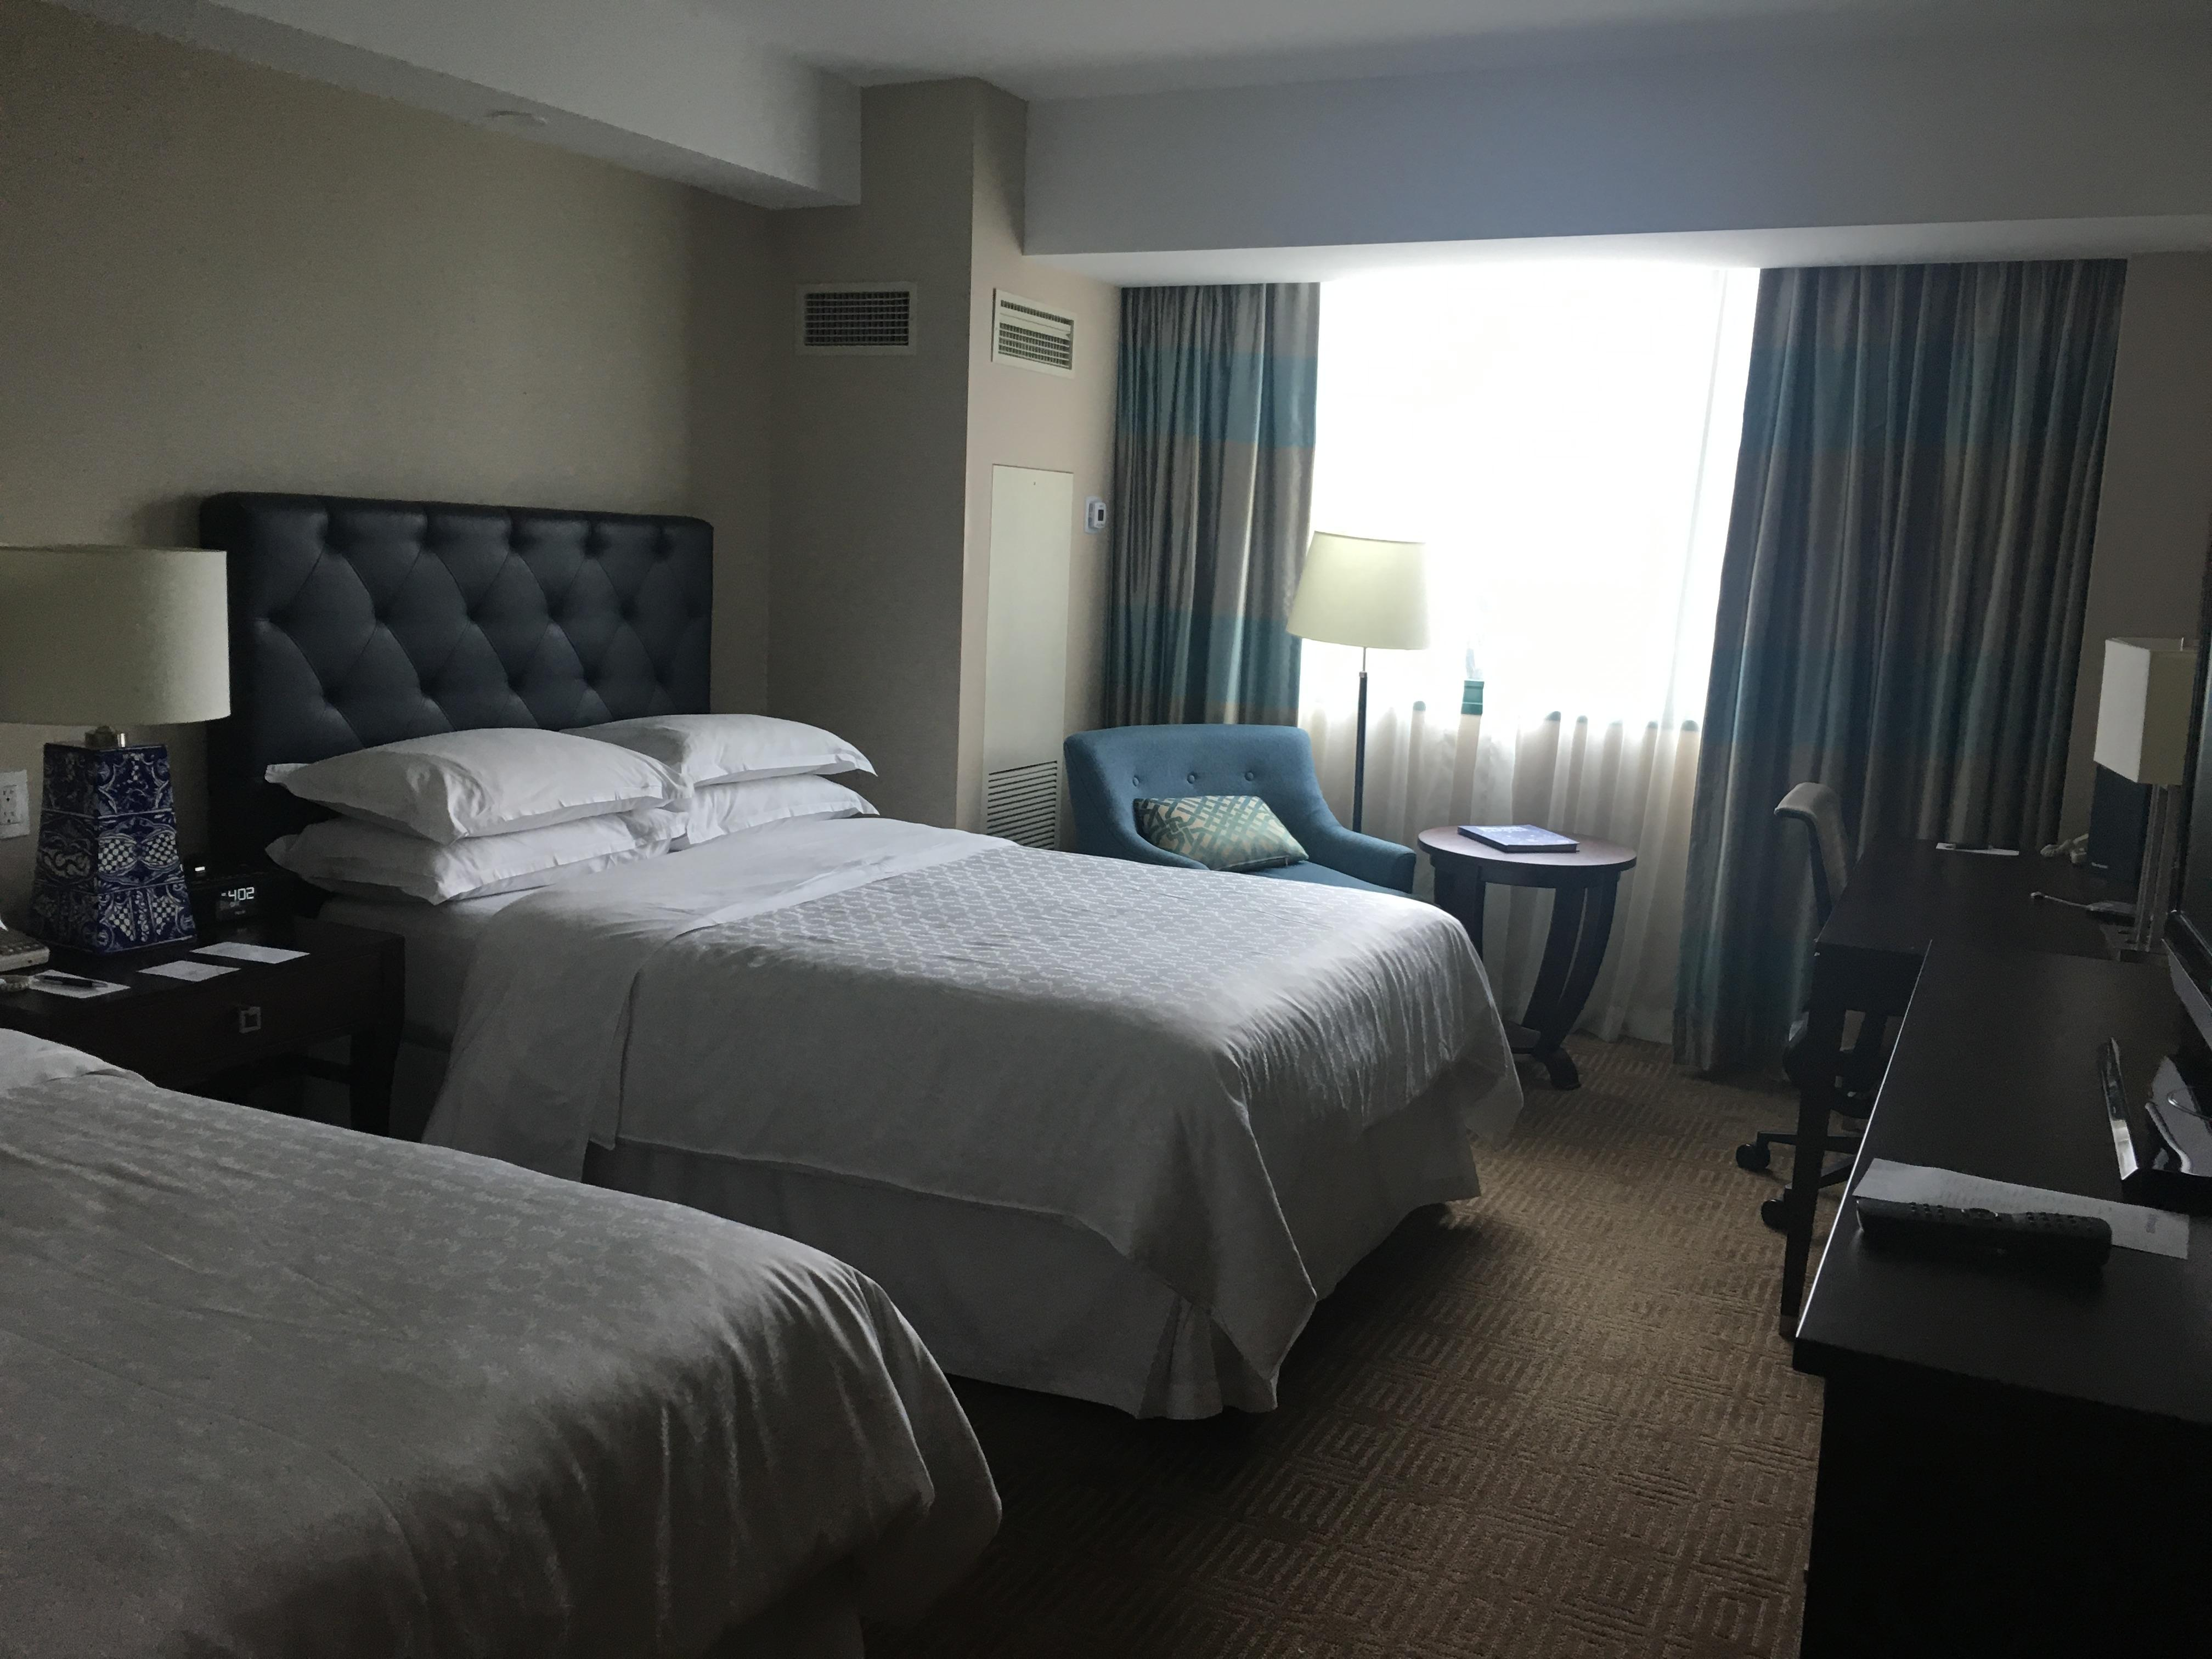 Double-bed in room 721